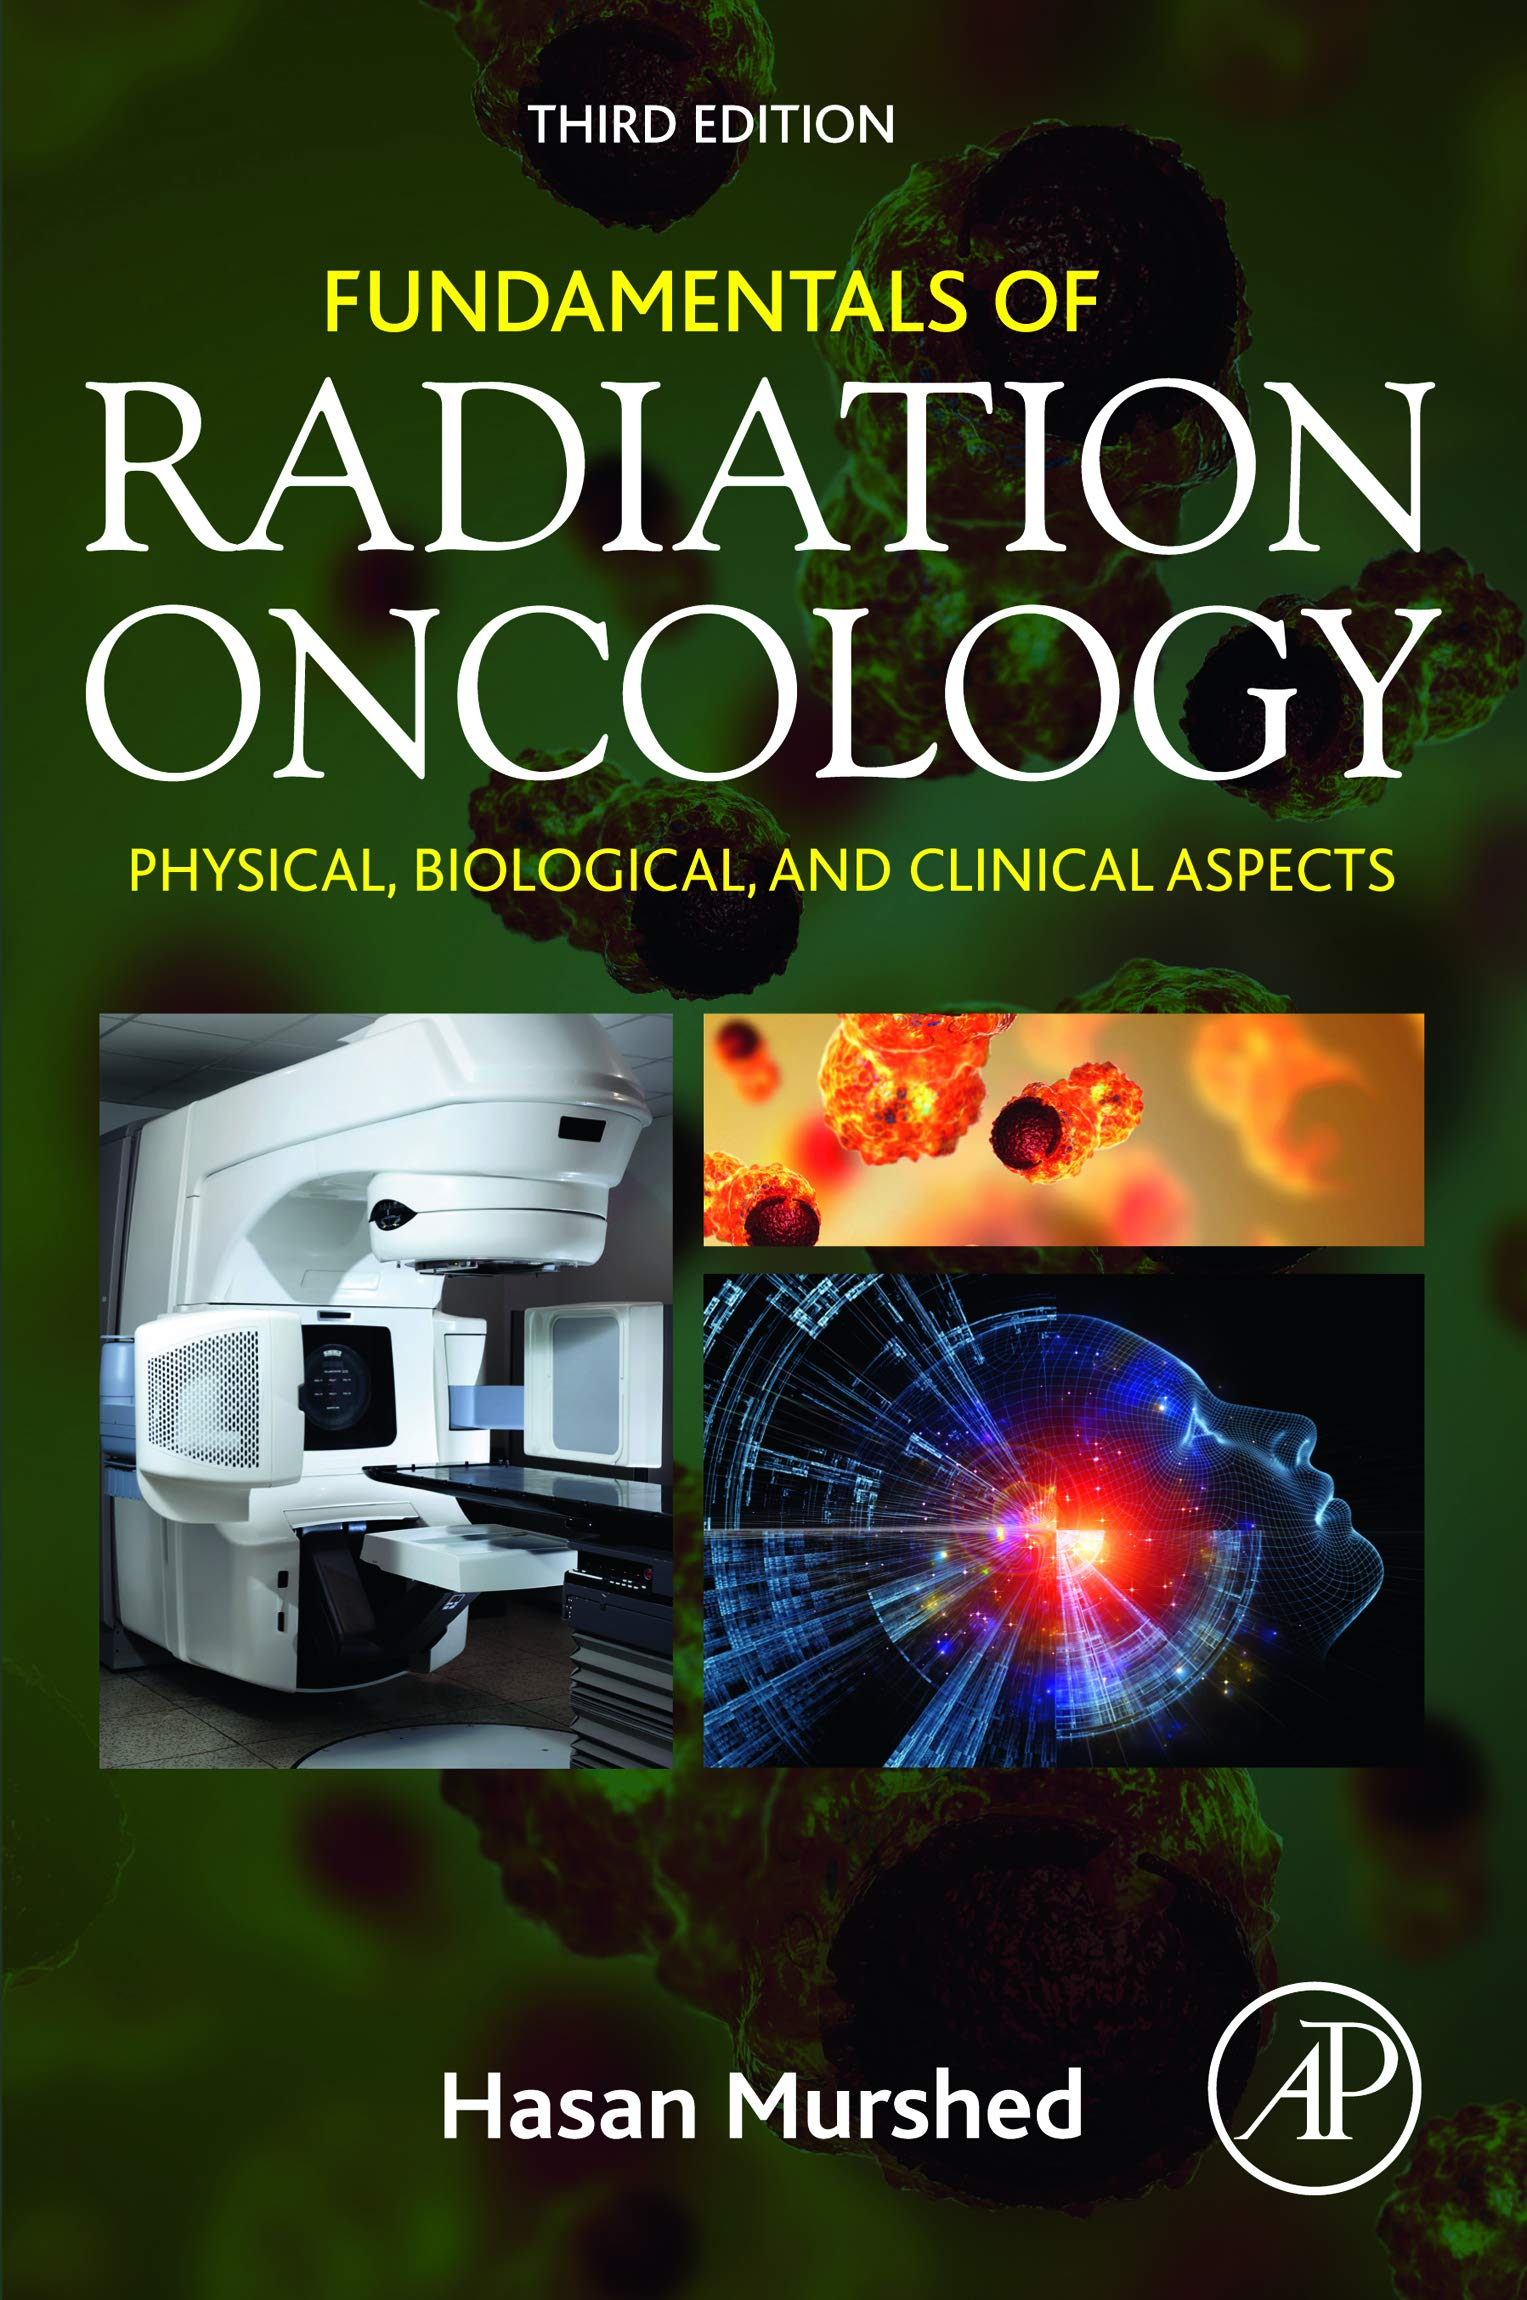 Image OfFundamentals Of Radiation Oncology: Physical, Biological, And Clinical Aspects (English Edition)